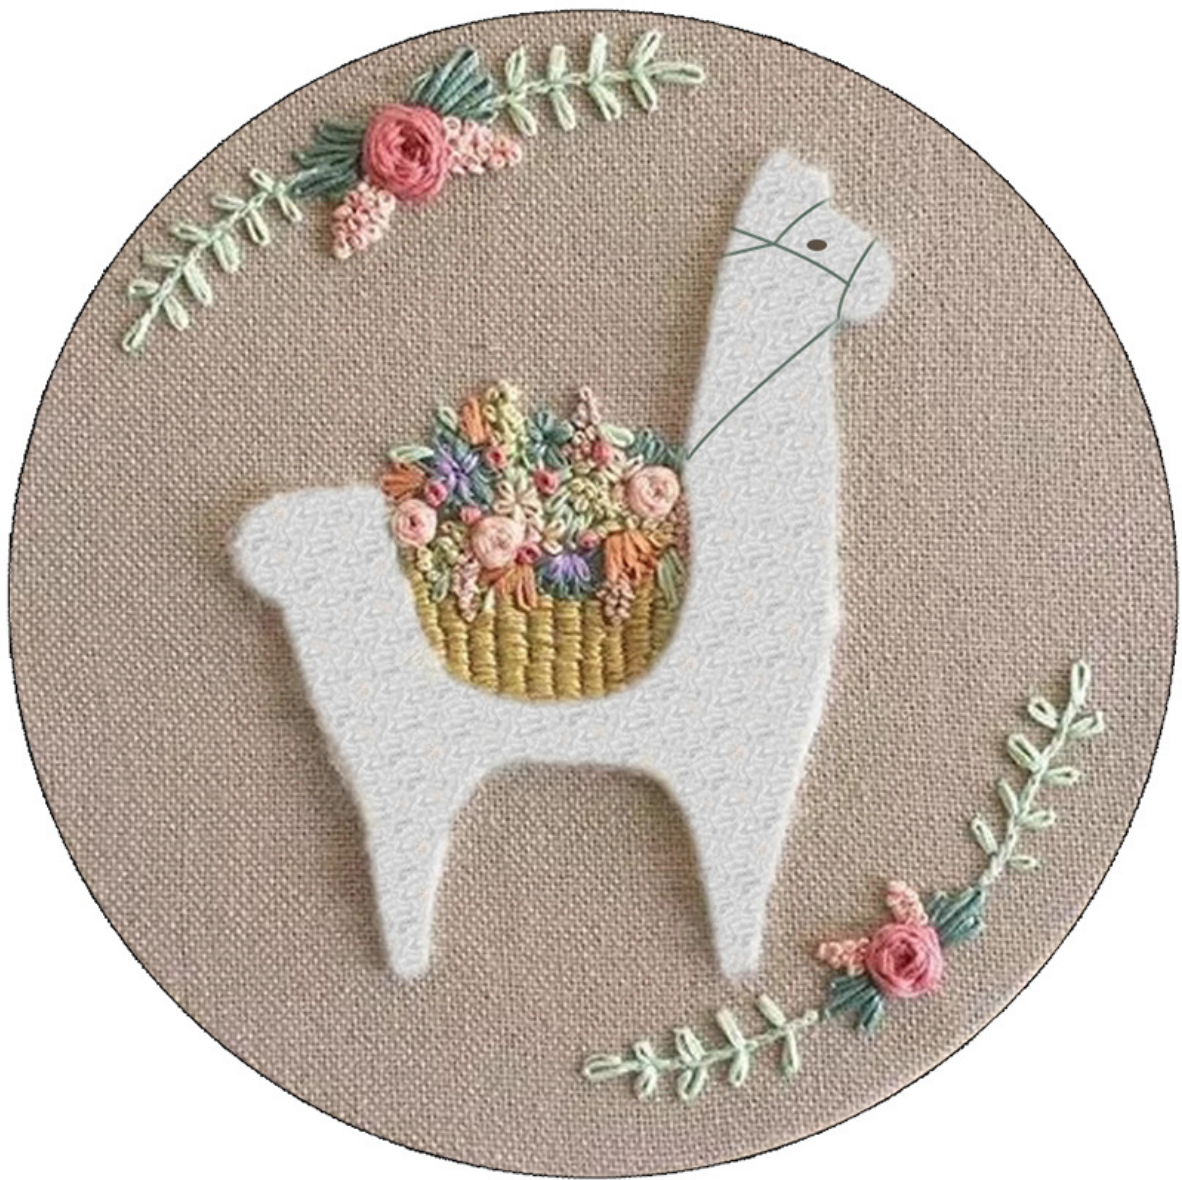 Fuzzy Llama with Blue Basket Embroidery